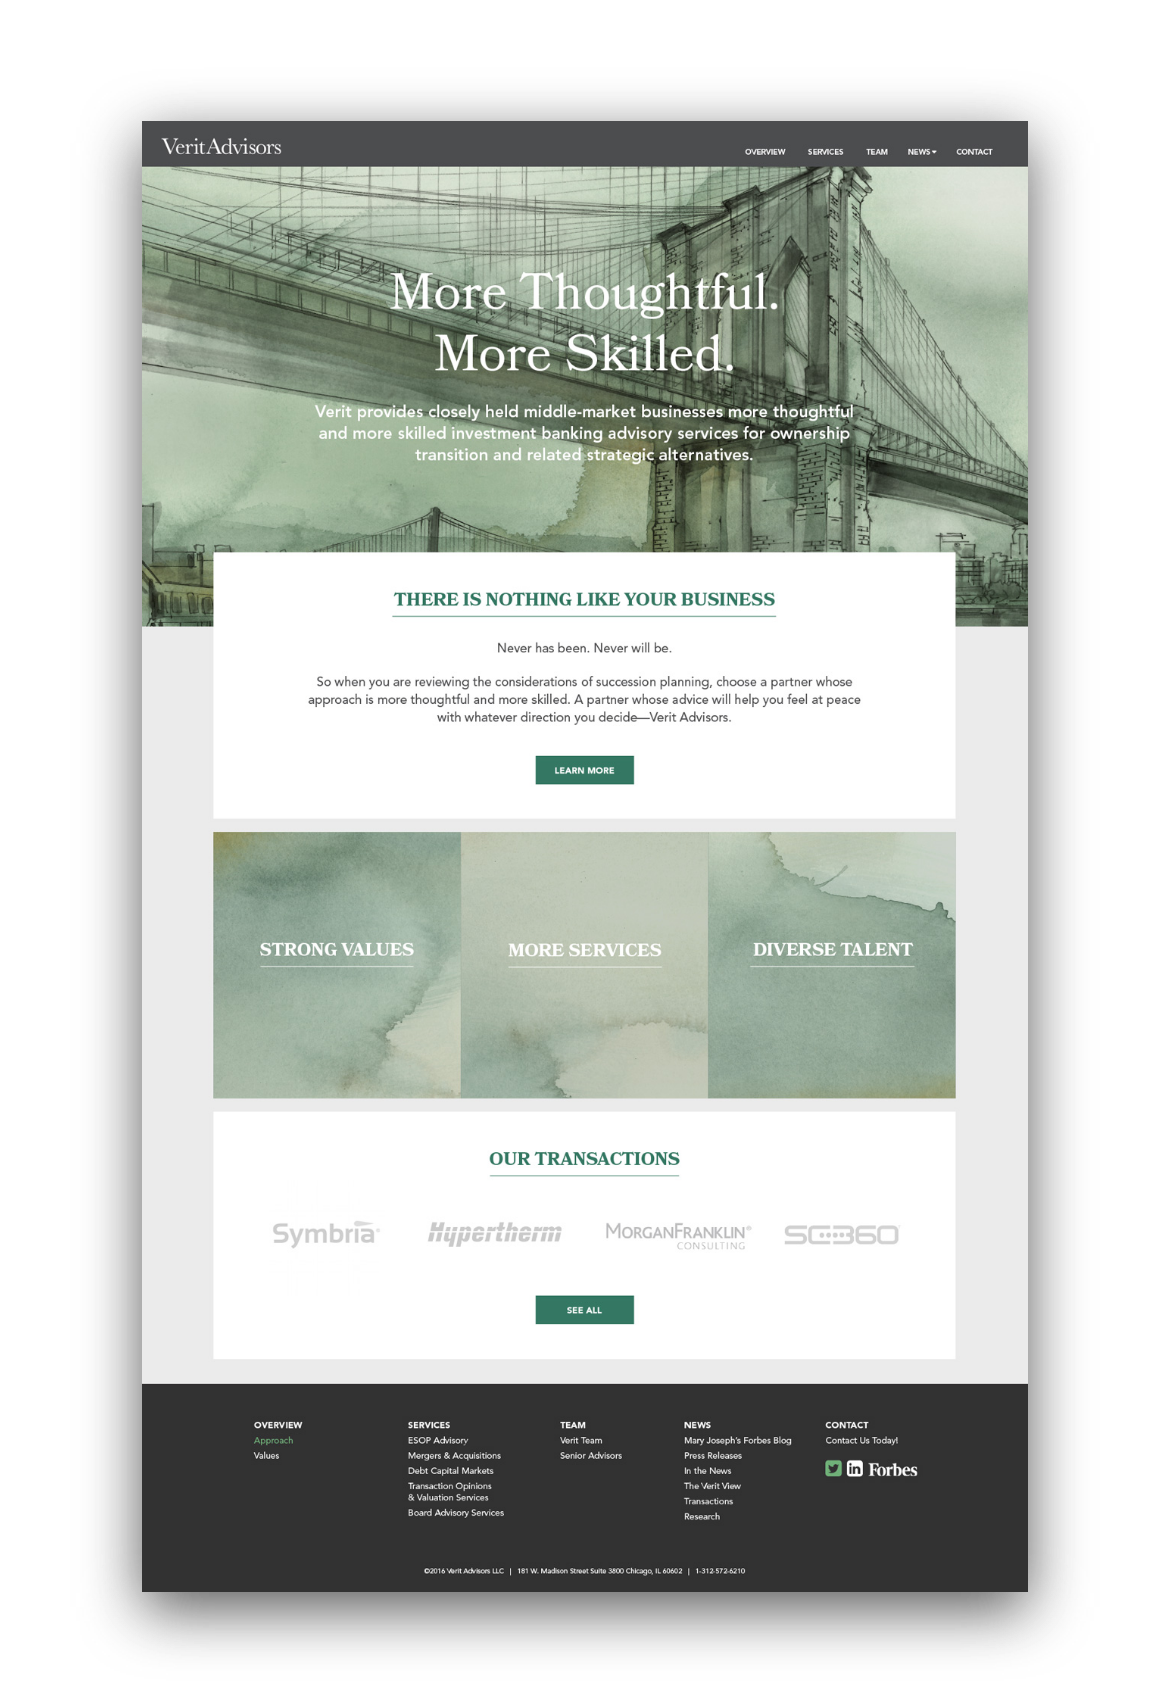 Verit Advisors homepage